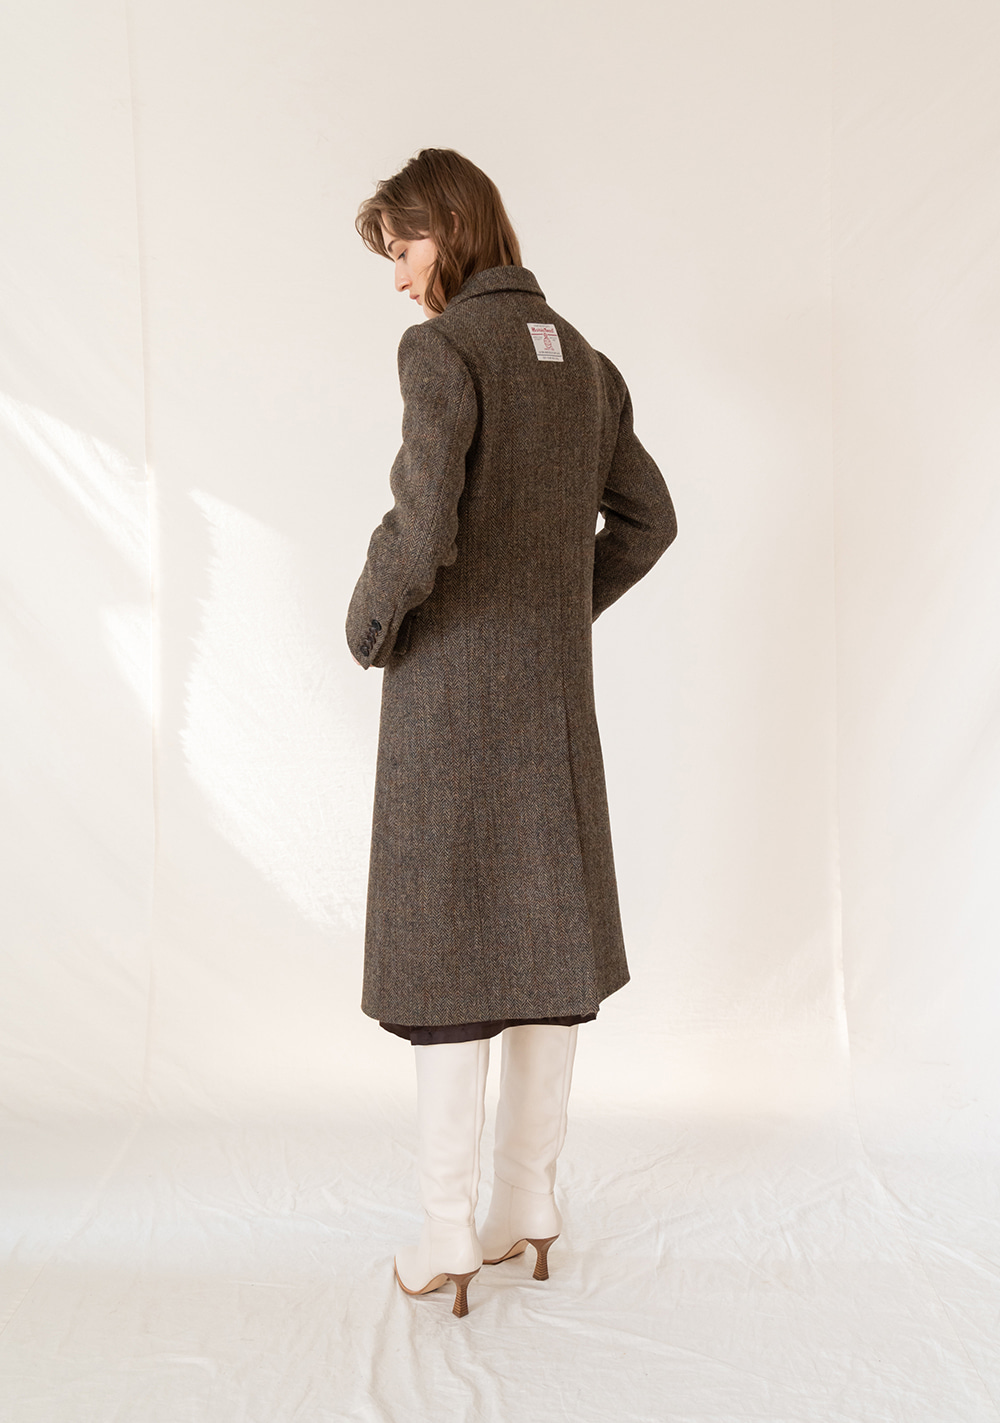 Autume/Winter 19 Collection